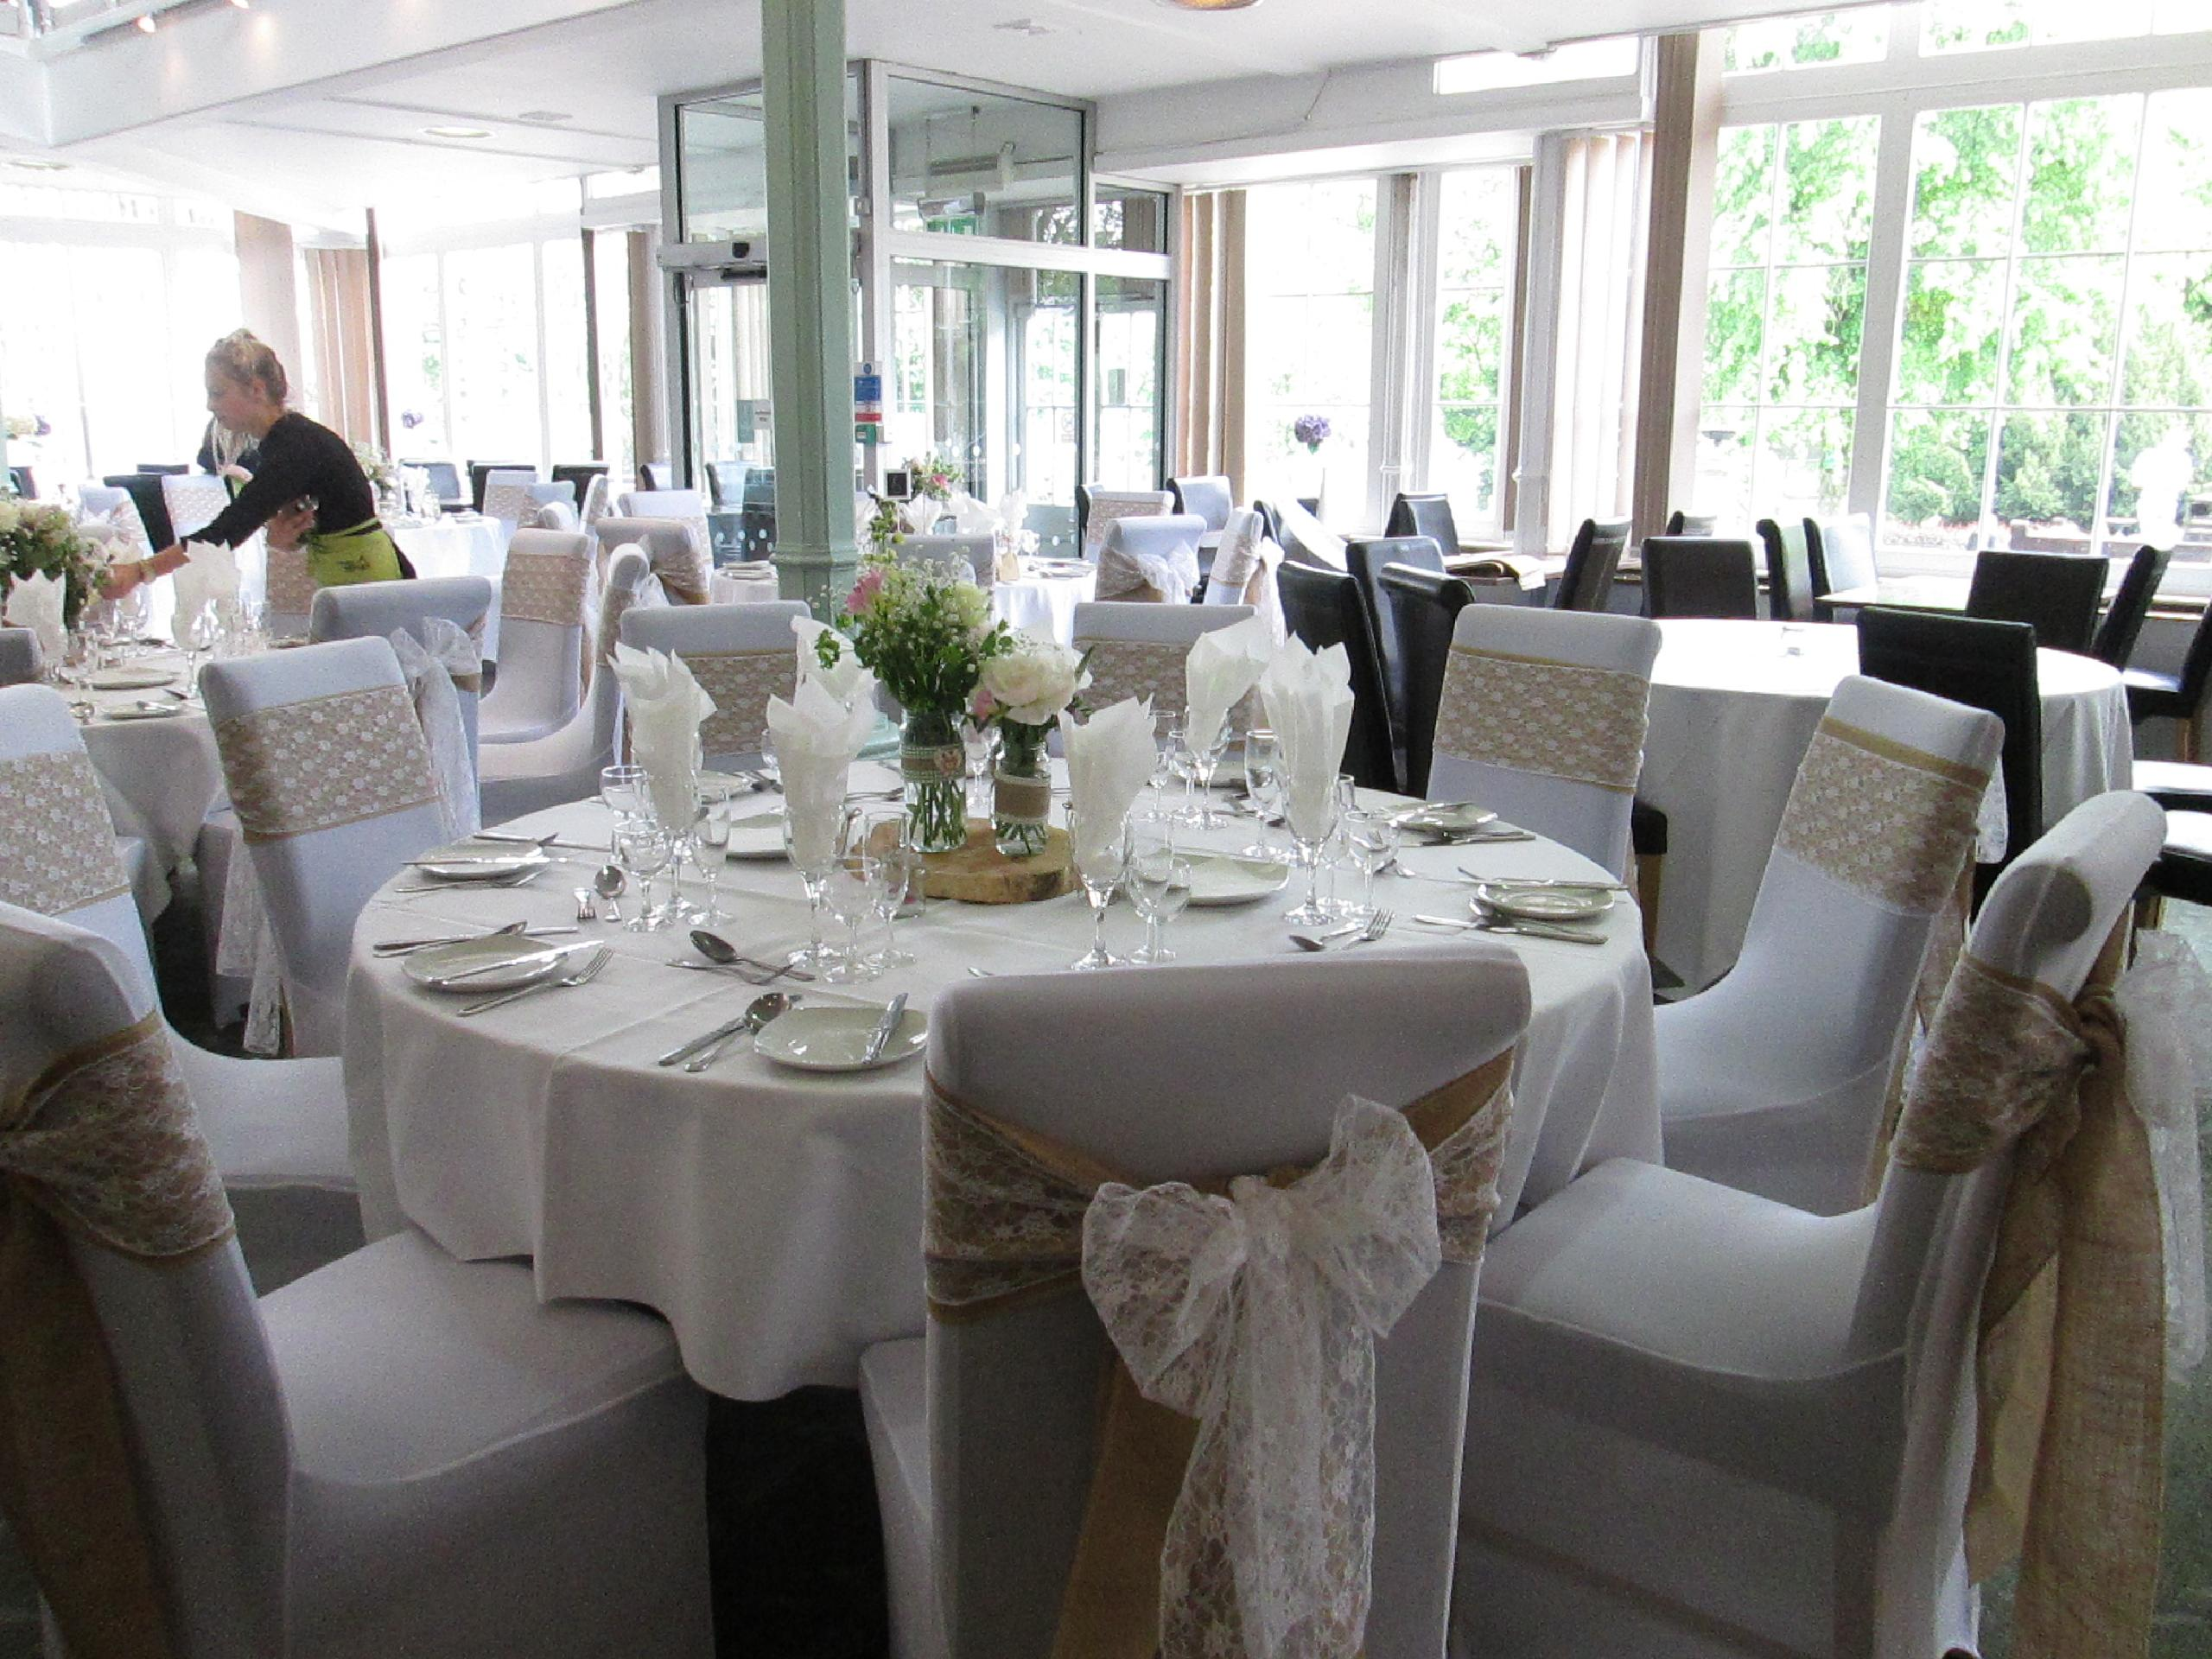 Dressed Table and Chair Cover In Cafe